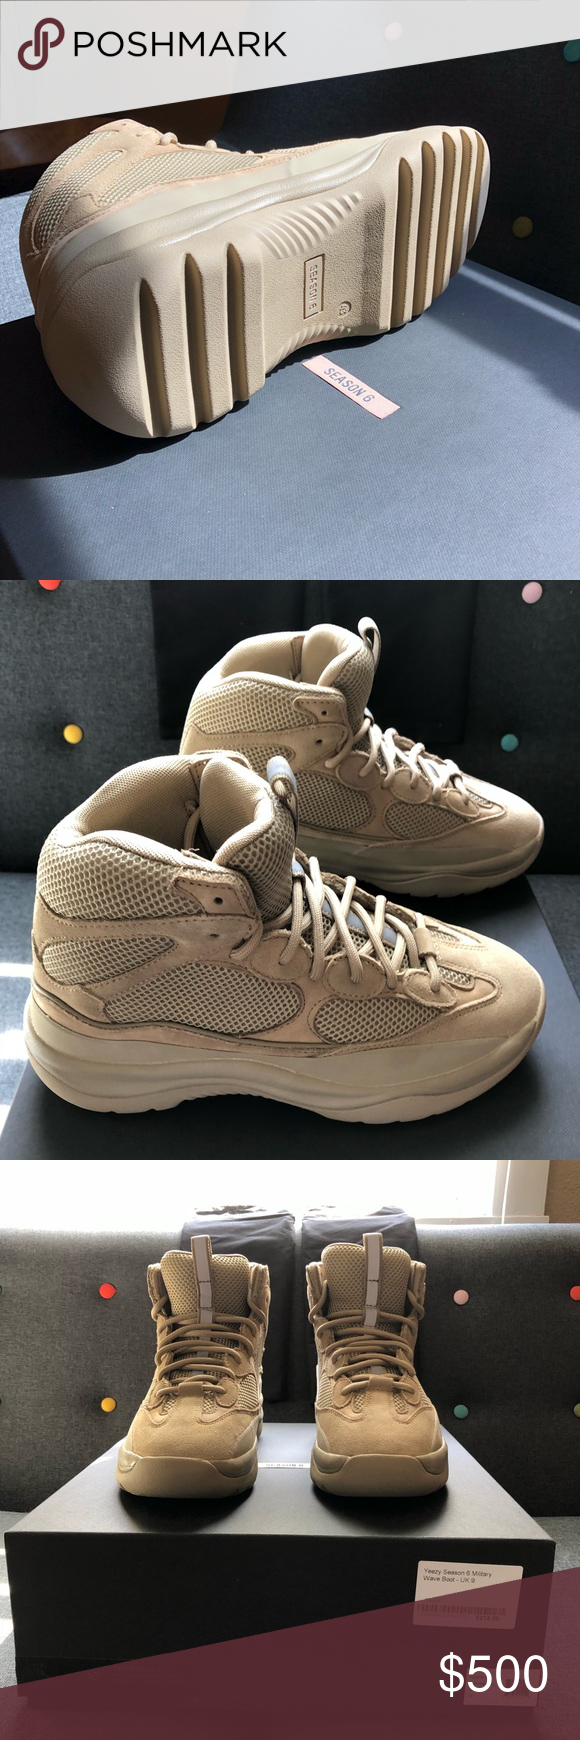 7d9372d0d5bf8 Yeezy Season 6 Desert Rat Boot US size 10 Yeezy Season 6 Military Wave Boot  (Desert Rat Boot.) US size 10. Brand new in box. Dust bags included with  Yeezy ...